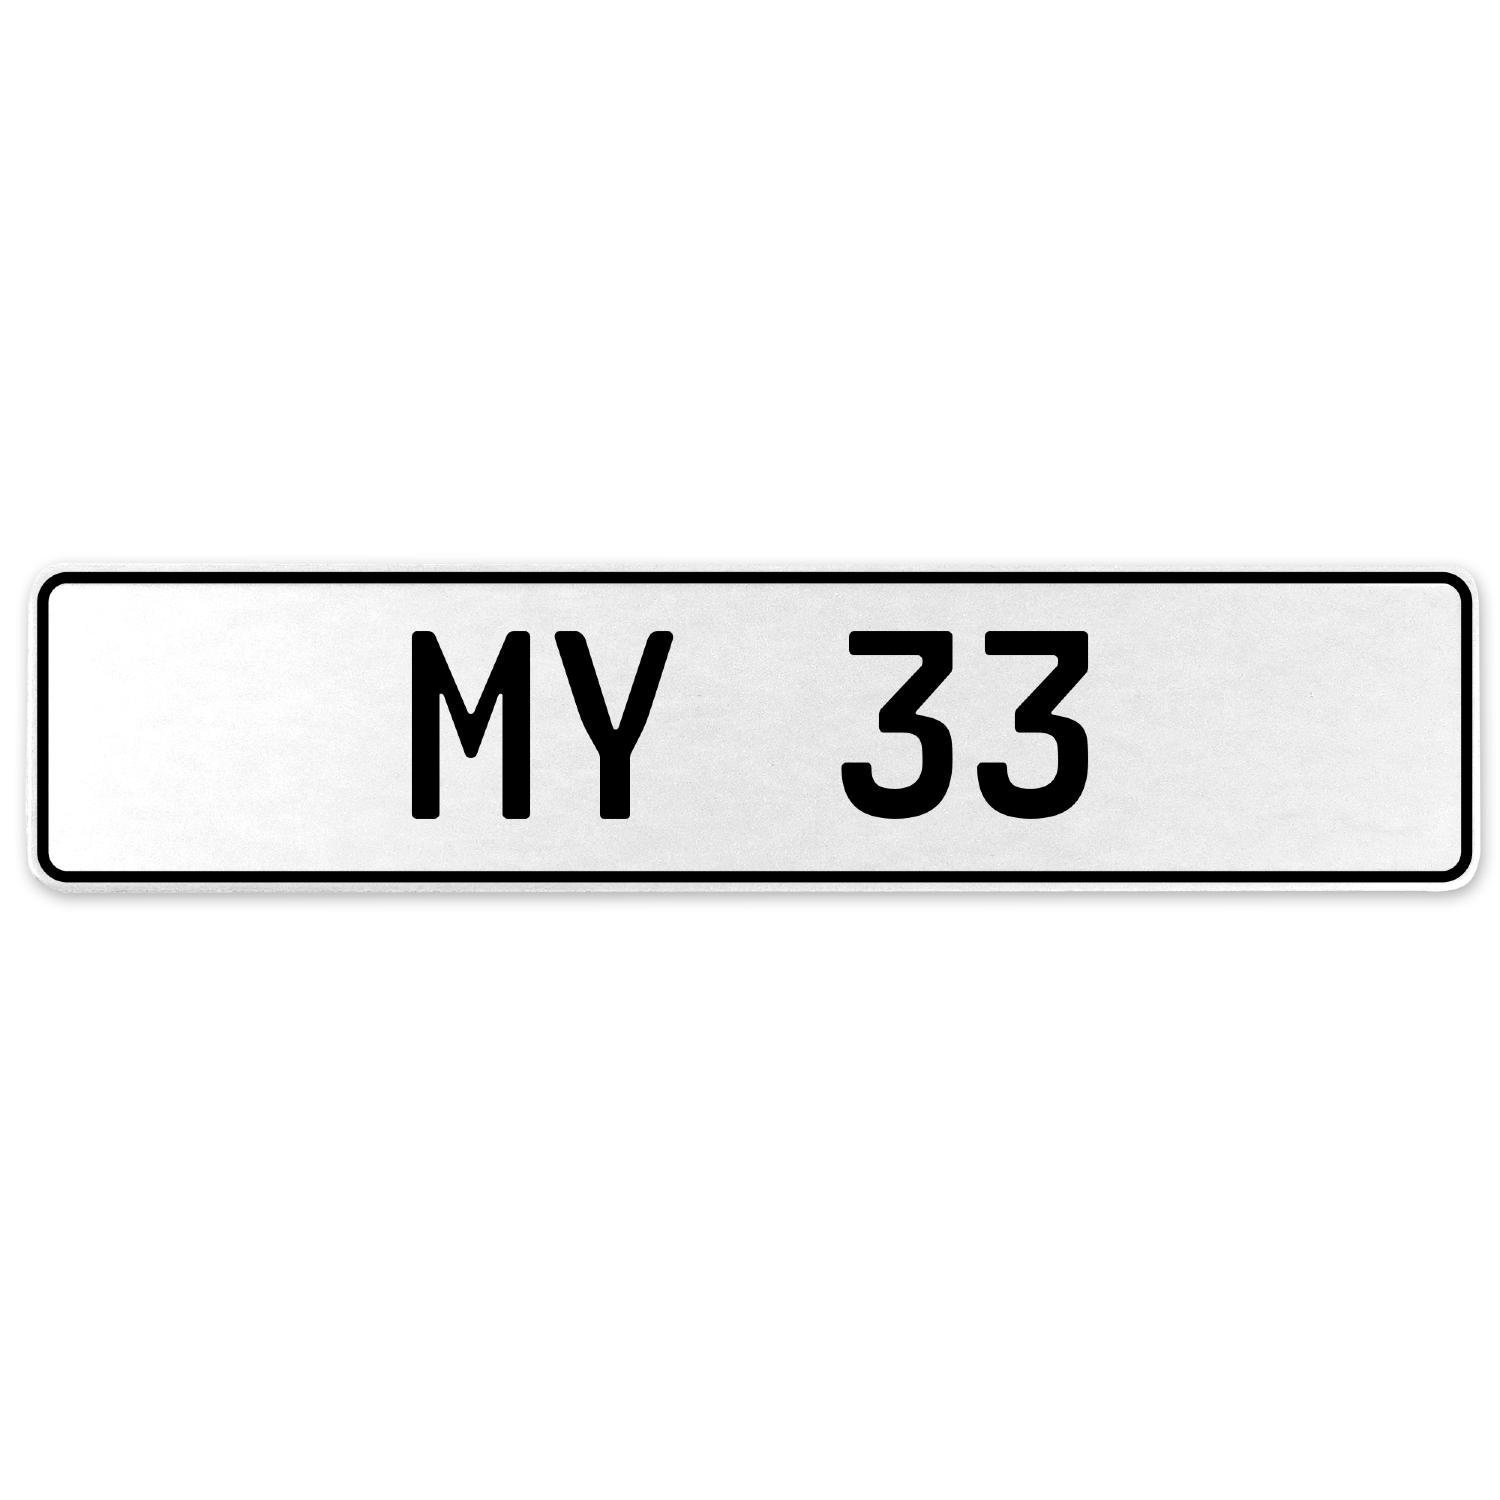 Vintage Parts 555125 My 33 White Stamped Aluminum European License Plate